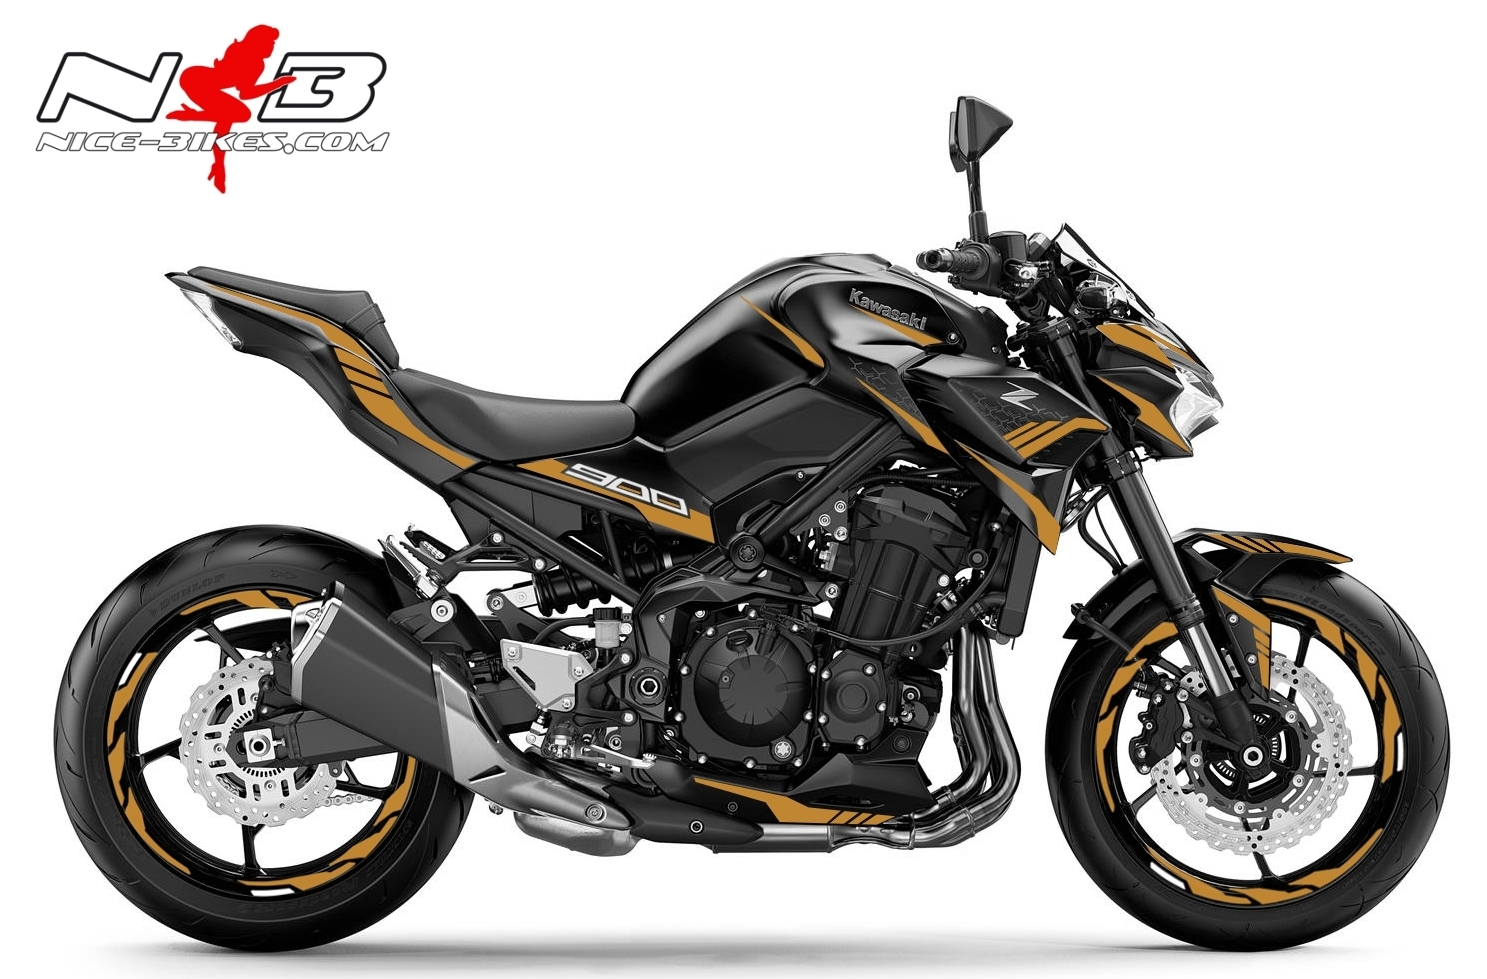 Foliendesign Kawasaki Z900 Bj. 2020 Olympic Gold